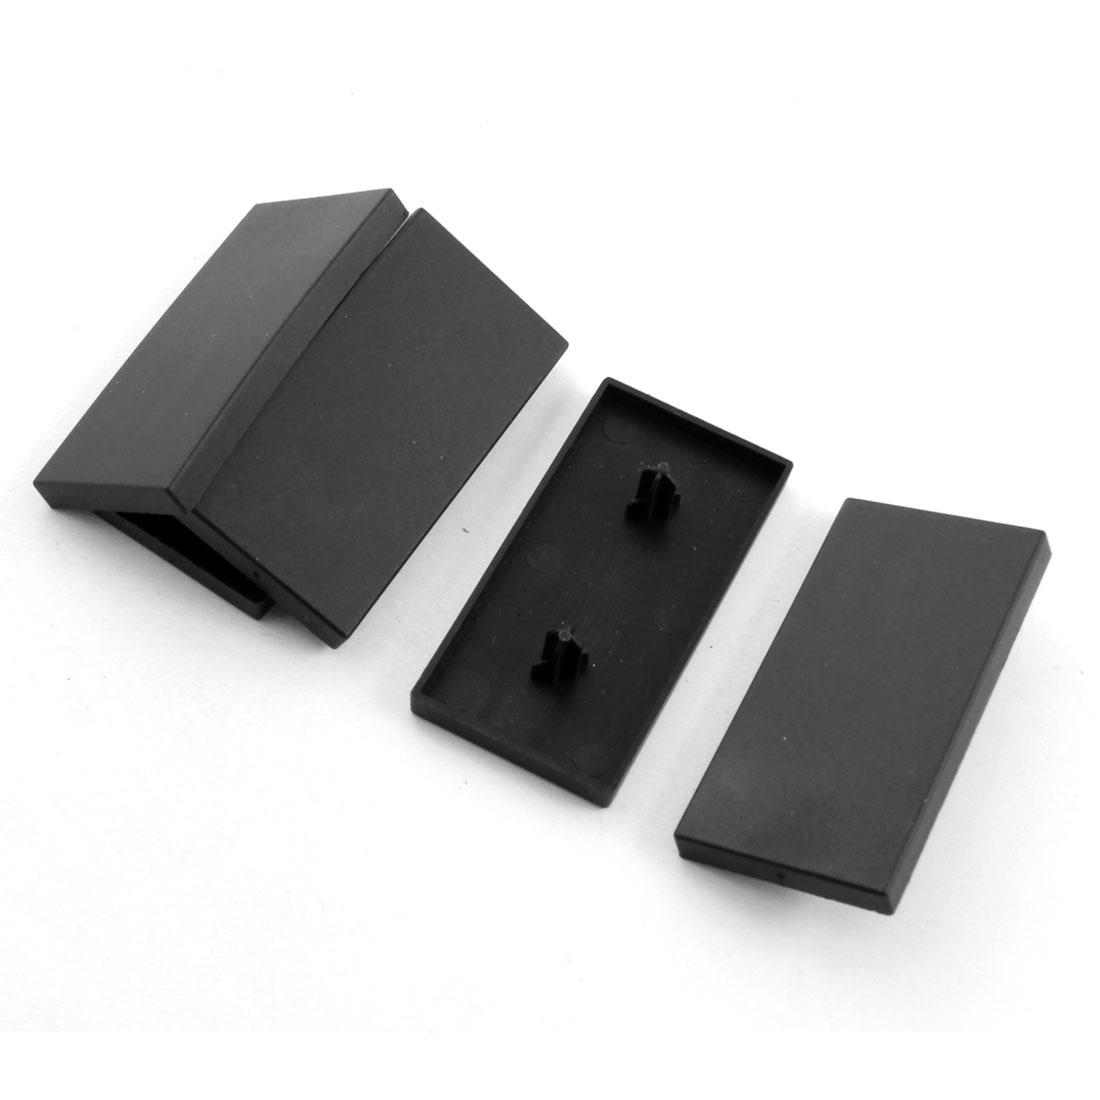 5 Pcs Black Rectangle Extrusion End Cover for 60mm x 30mm T-Slot Aluminum Profile